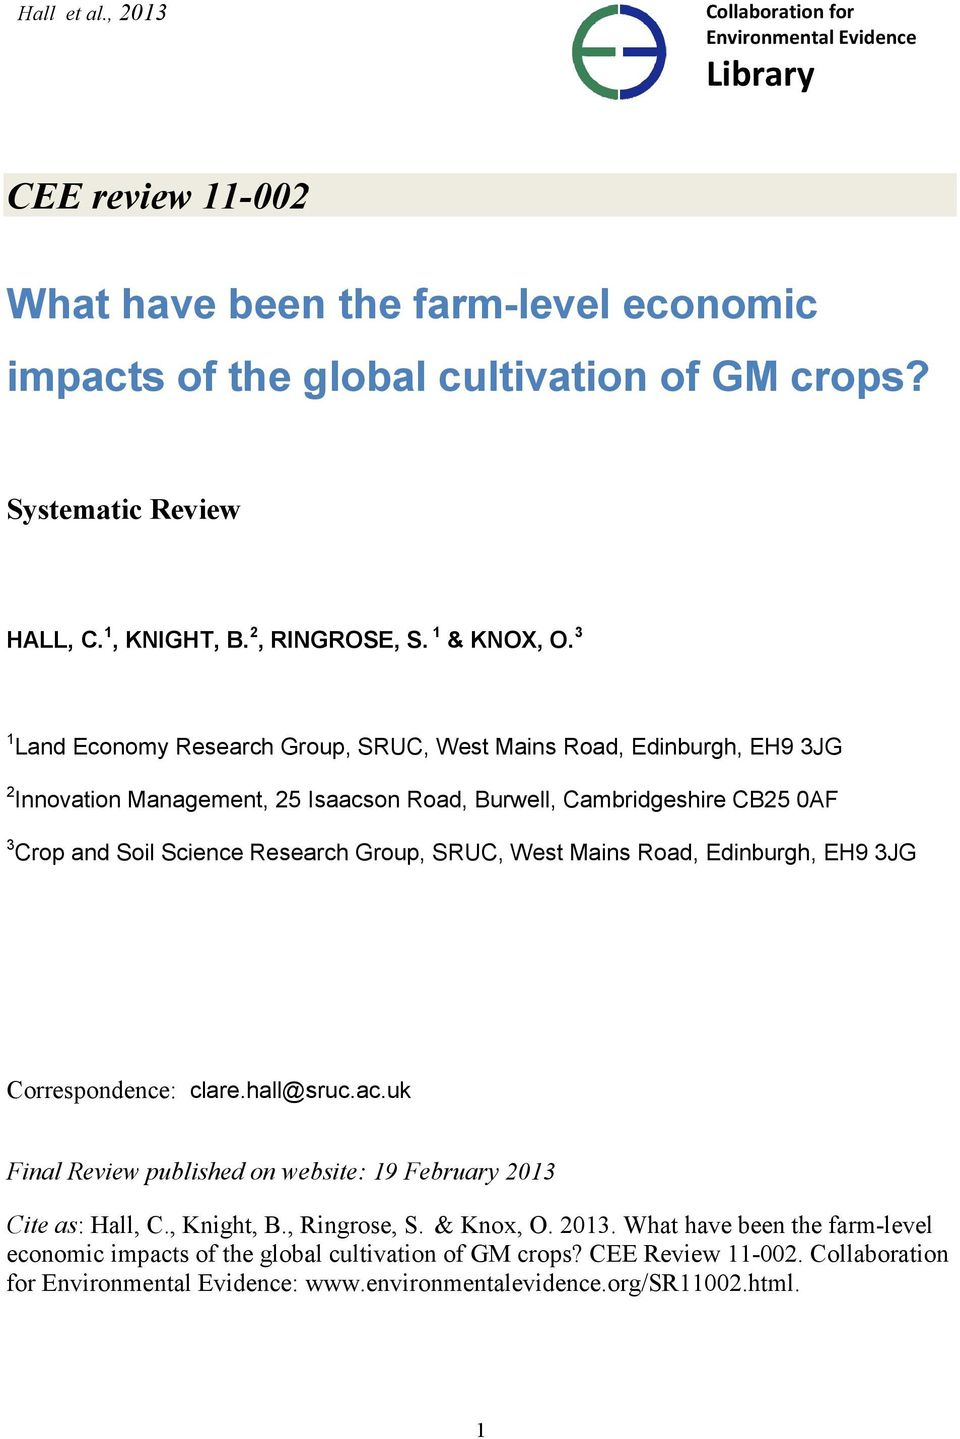 3 1 Land Economy Research Group, SRUC, West Mains Road, Edinburgh, EH9 3JG 2 Innovation Management, 25 Isaacson Road, Burwell, Cambridgeshire CB25 0AF 3 Crop and Soil Science ce Research Group, SRUC,